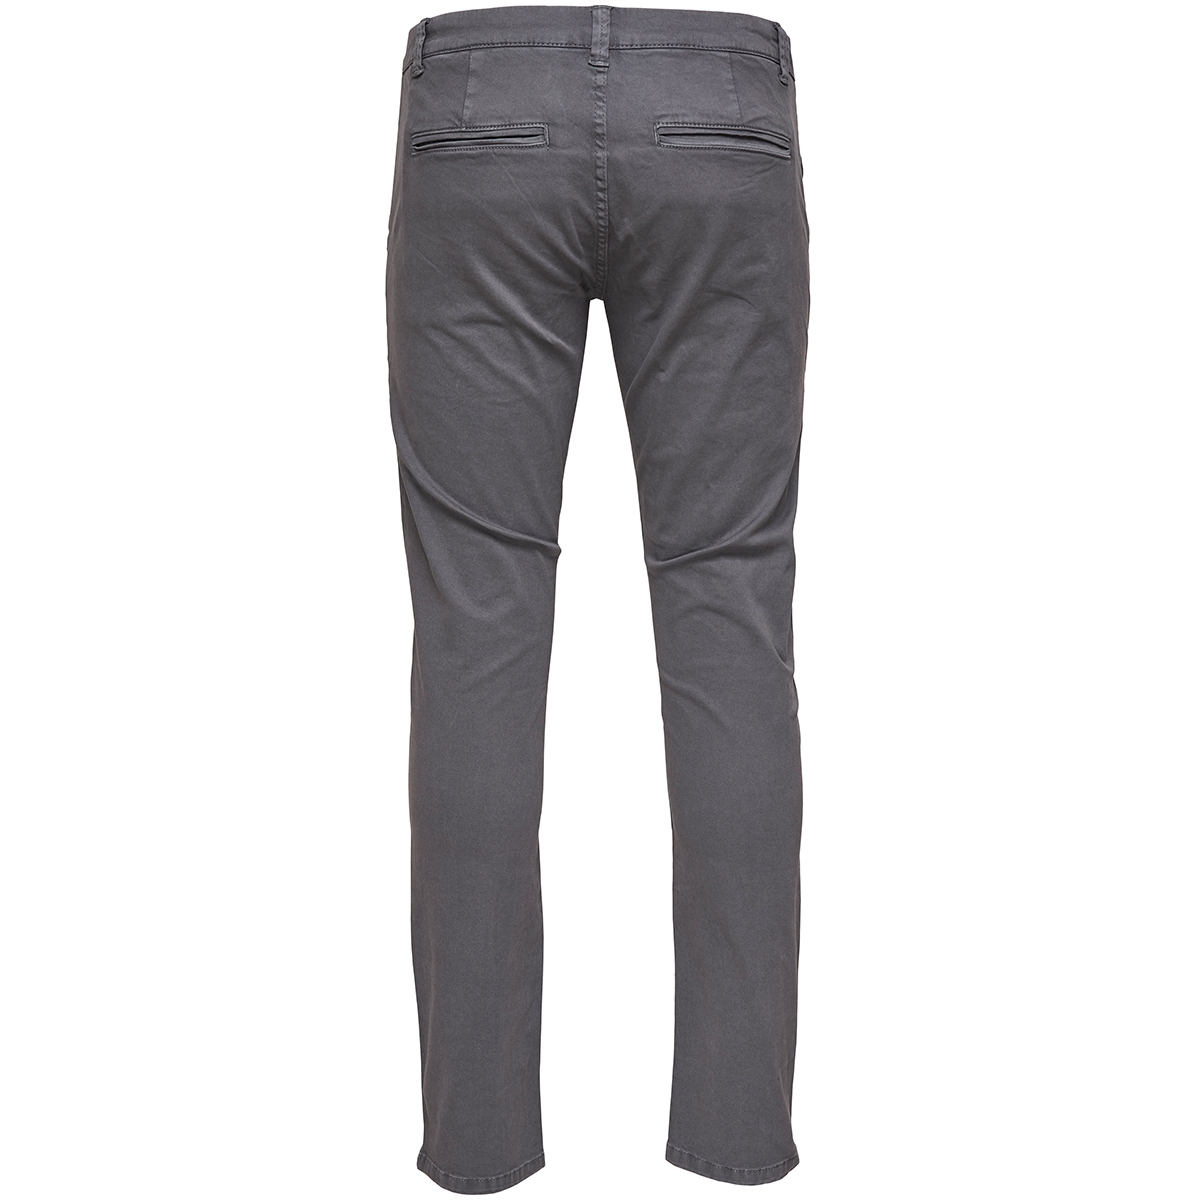 onstarp chino pk 1462 noos 22011462 only & sons broek gray pinstripe